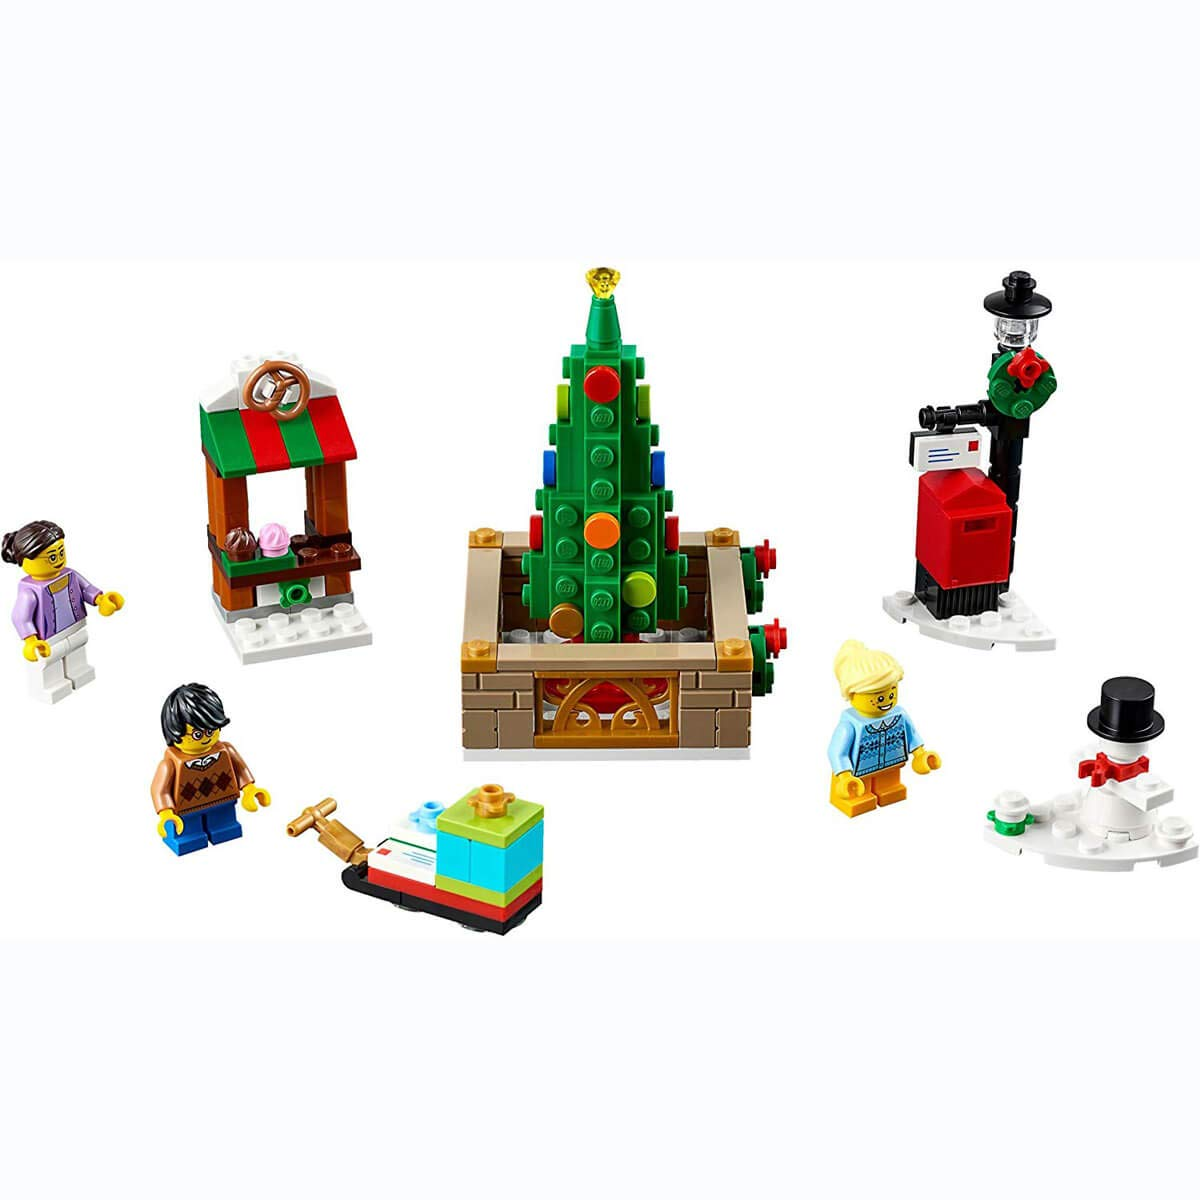 LEGO Christmas 40263 - EXC Piazza of Cities: Amazon.co.uk: Toys & Games